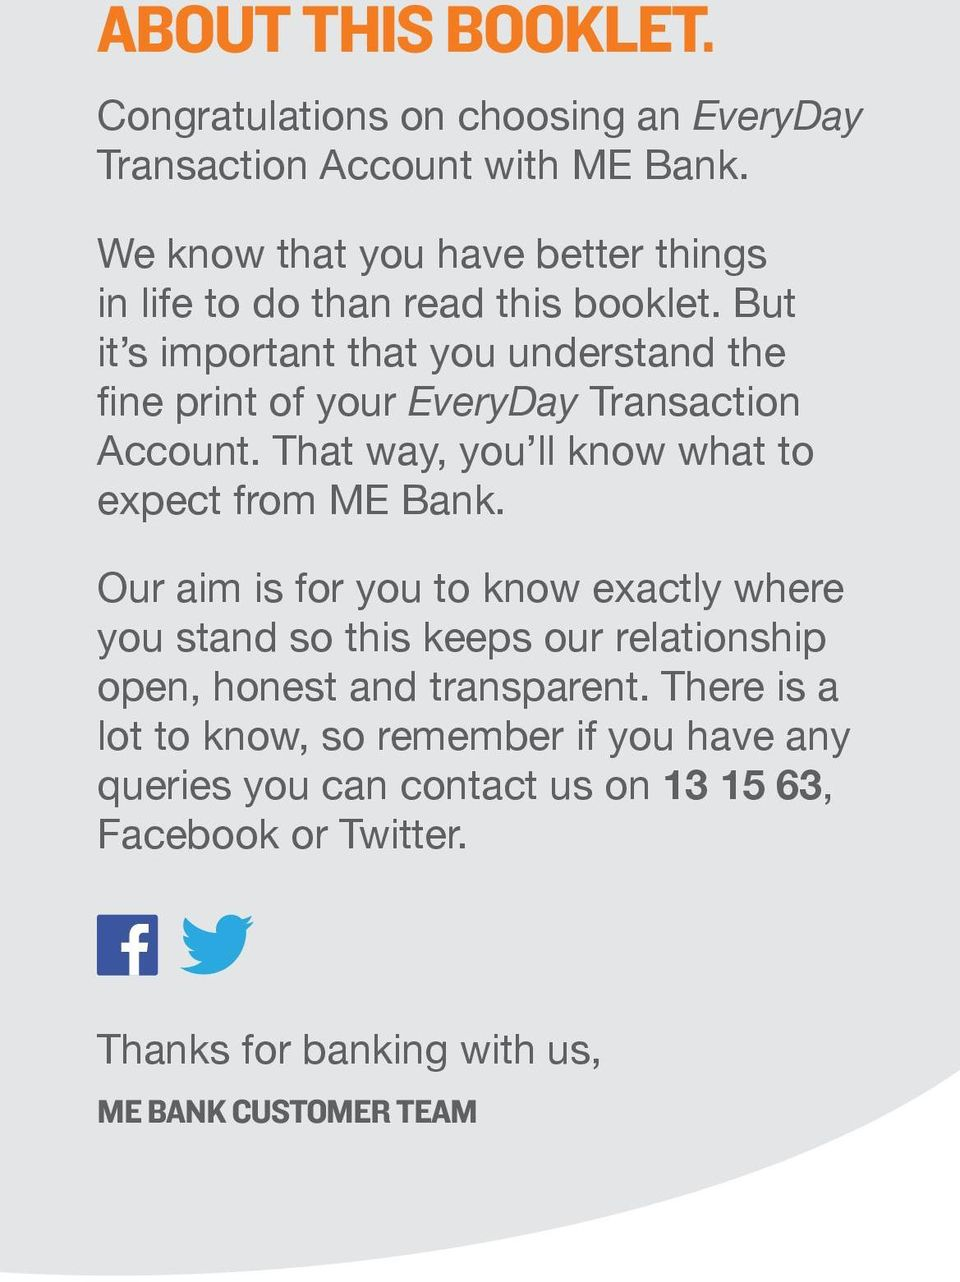 But it s important that you understand the fine print of your EveryDay Transaction Account. That way, you ll know what to expect from ME Bank.